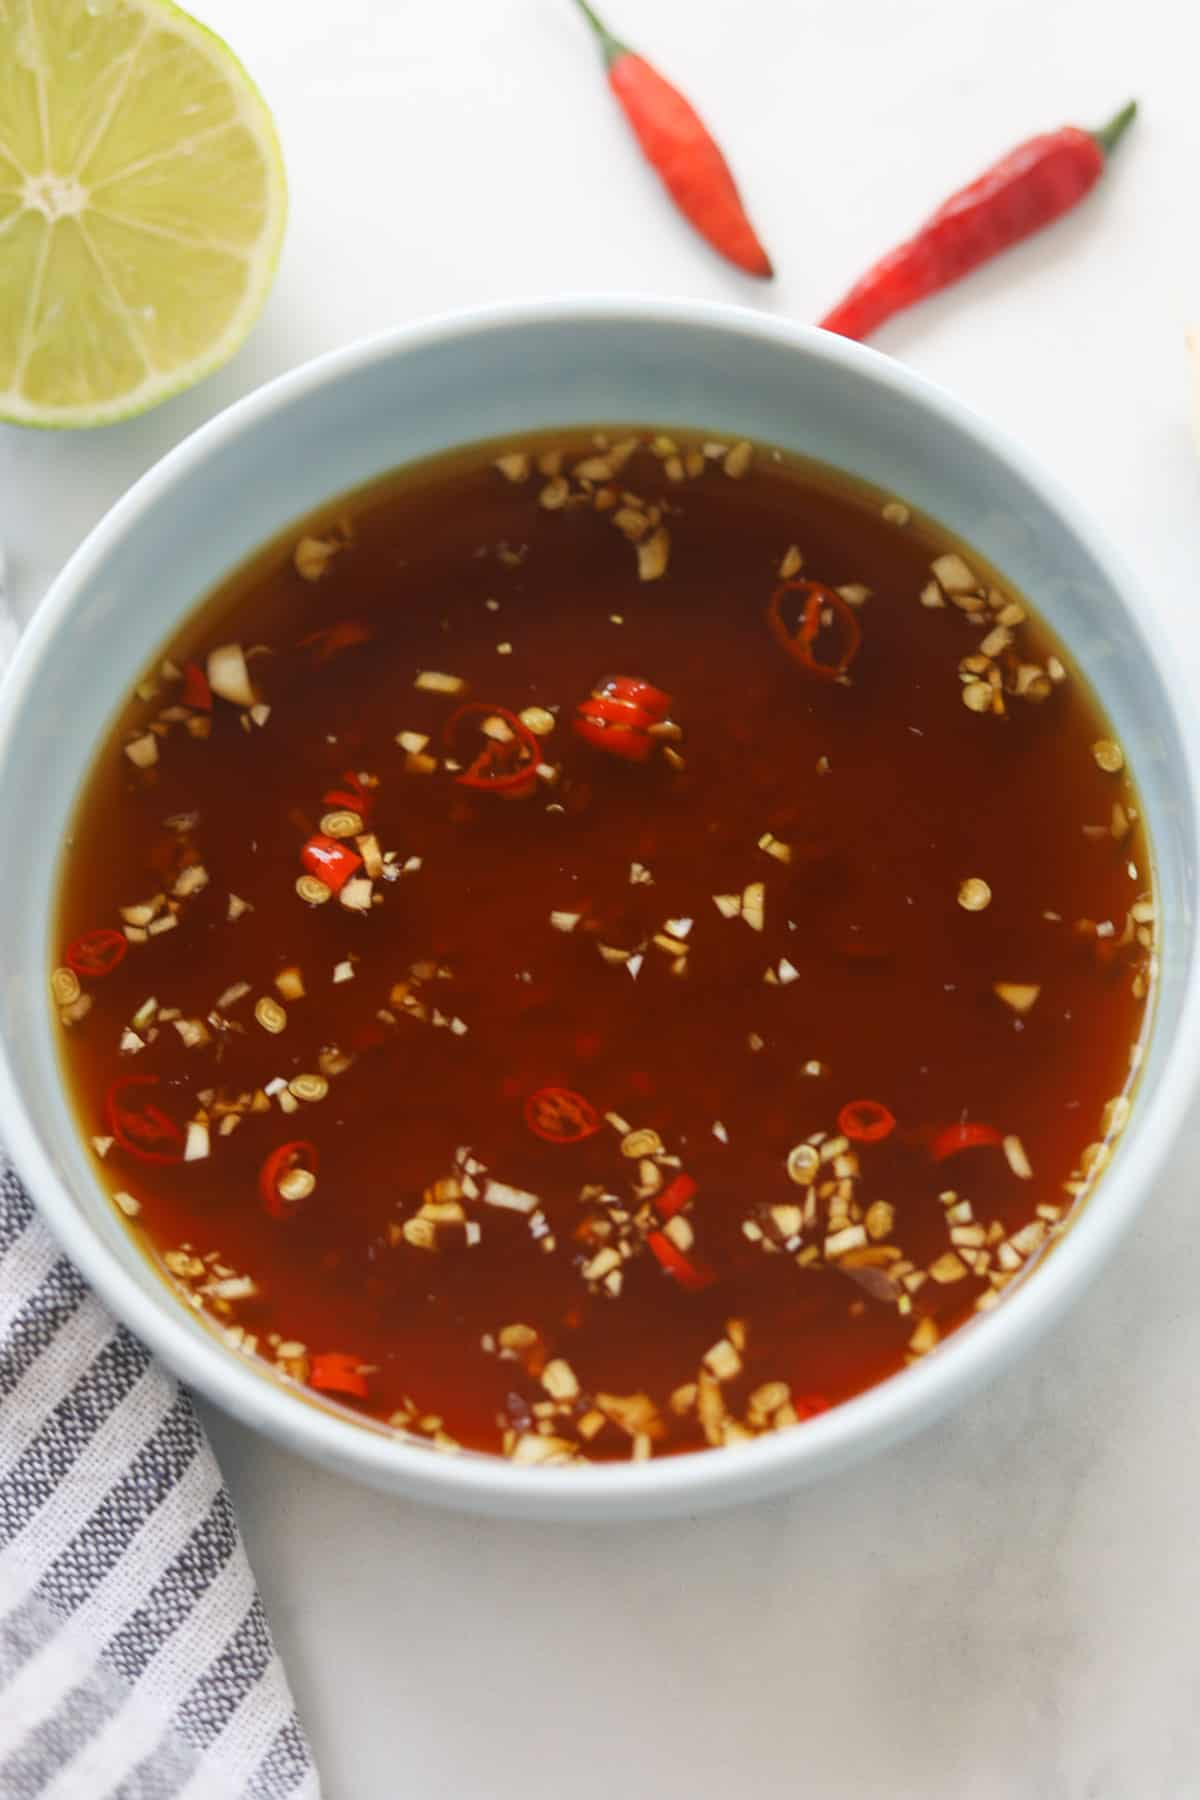 Vietnamese vegan nuoc cham chay sauce in a bowl.